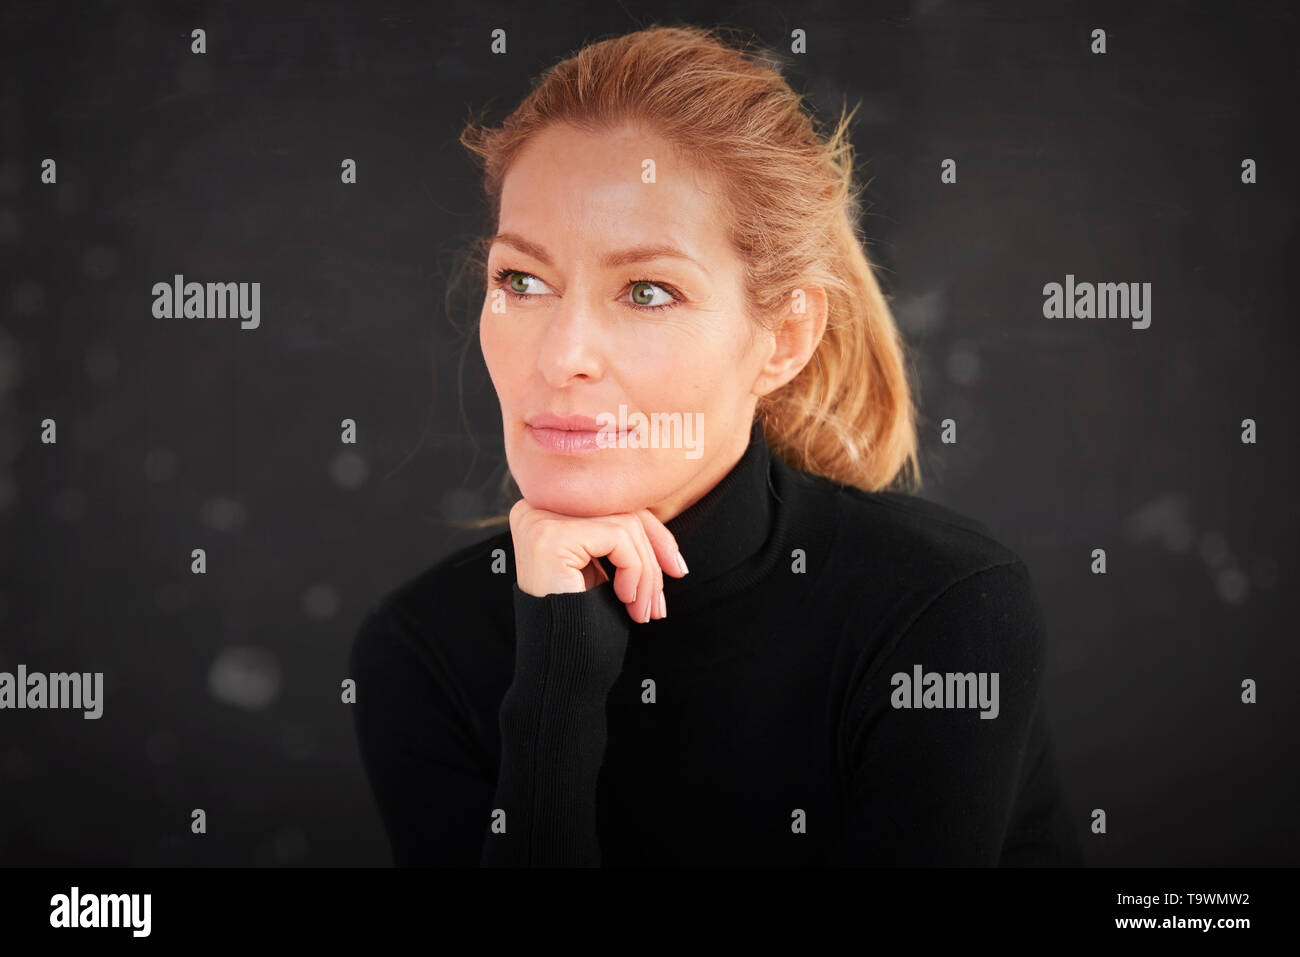 Close-up portrait shot of beautiful blond mature woman sitting at dark background while daydreaming. - Stock Image